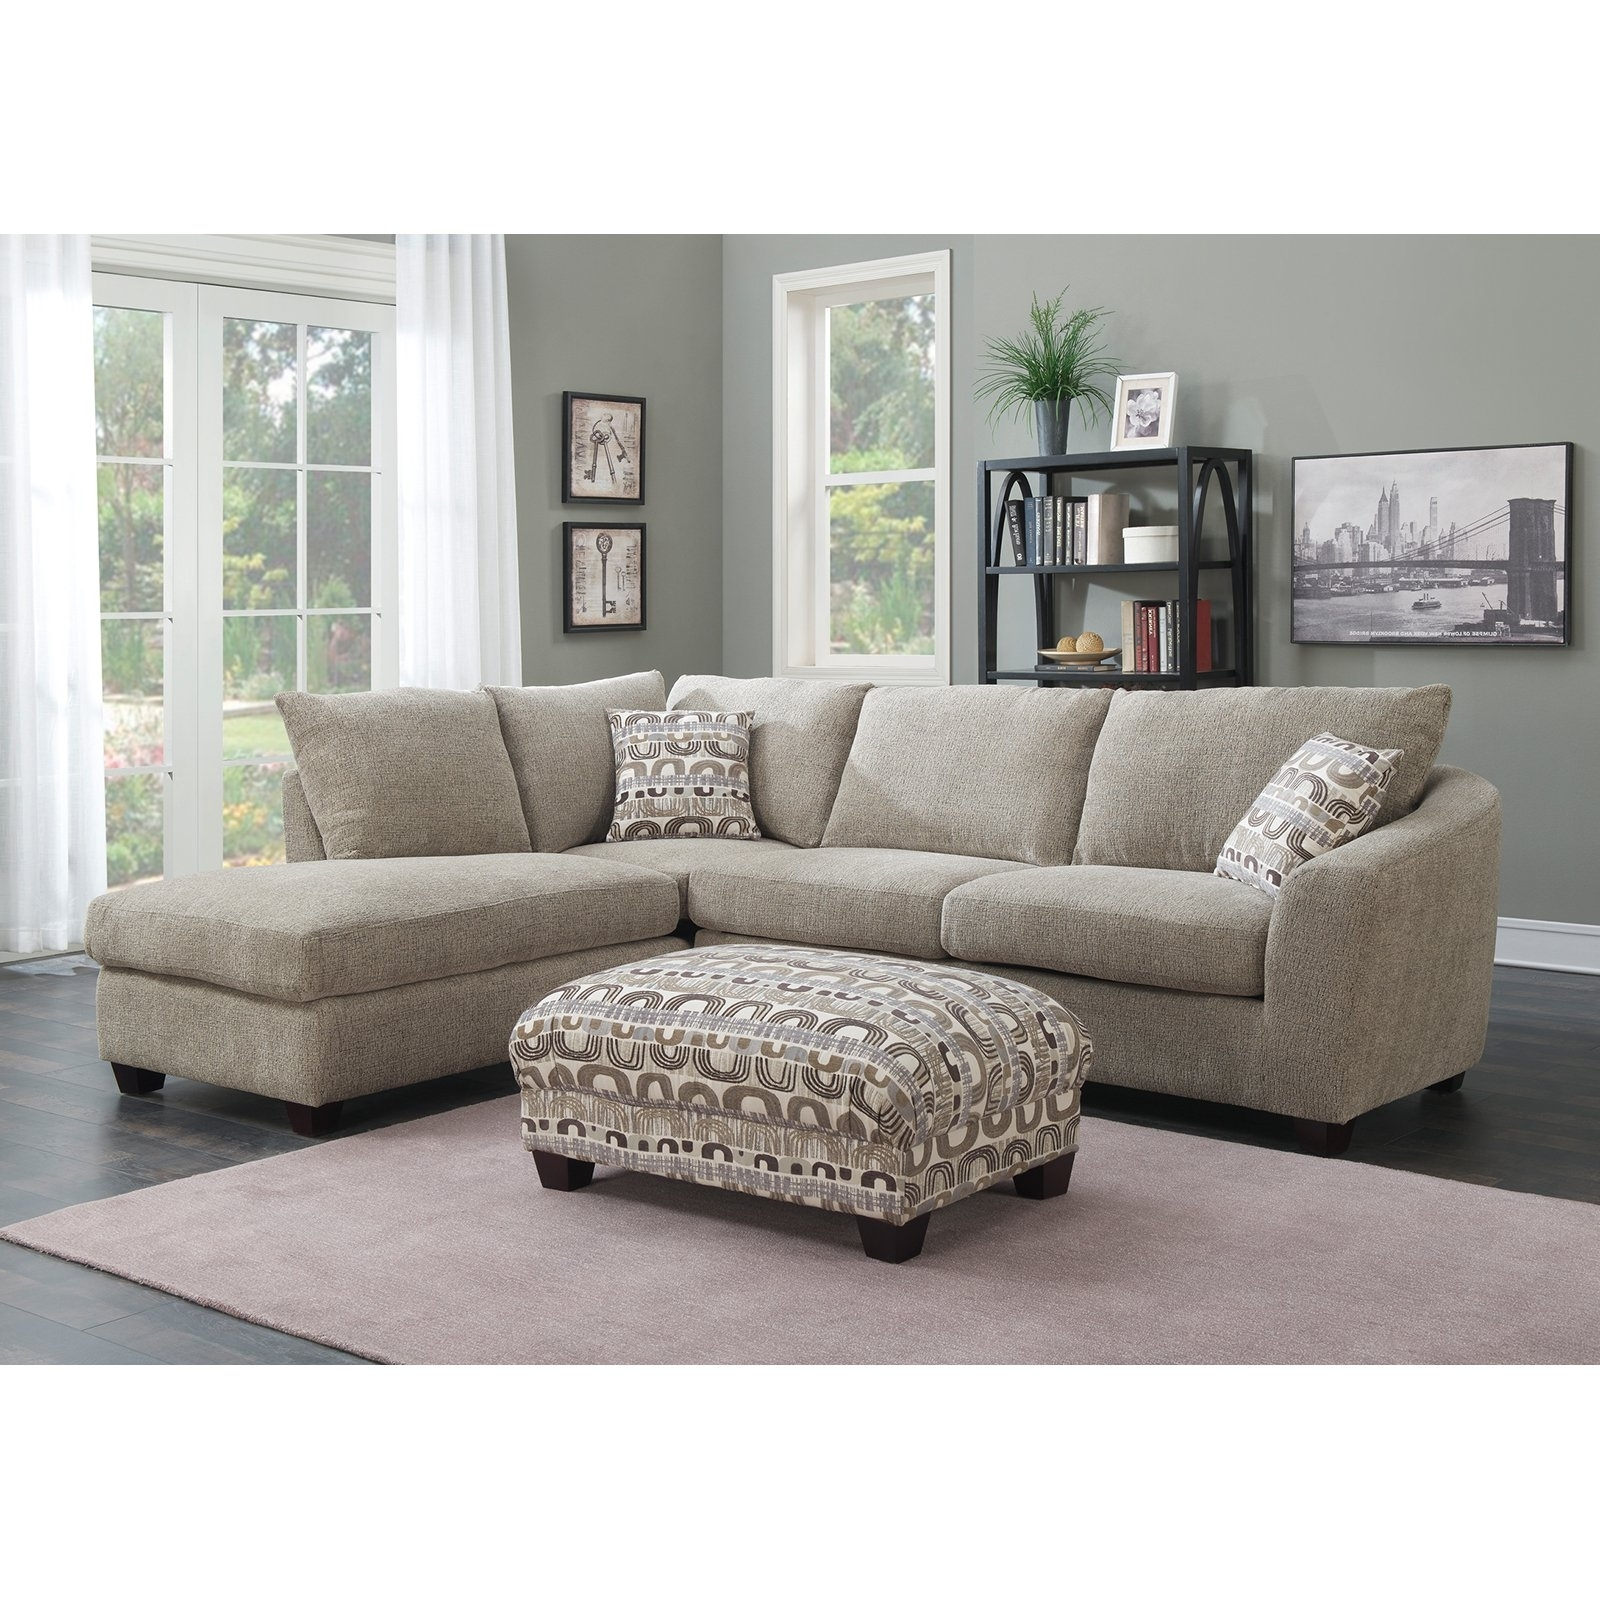 Trendy 2 Piece Sectionals With Chaise With Emerald Home Urbana 2 Piece Sectional Sofa With Chaise – Walmart (View 4 of 15)